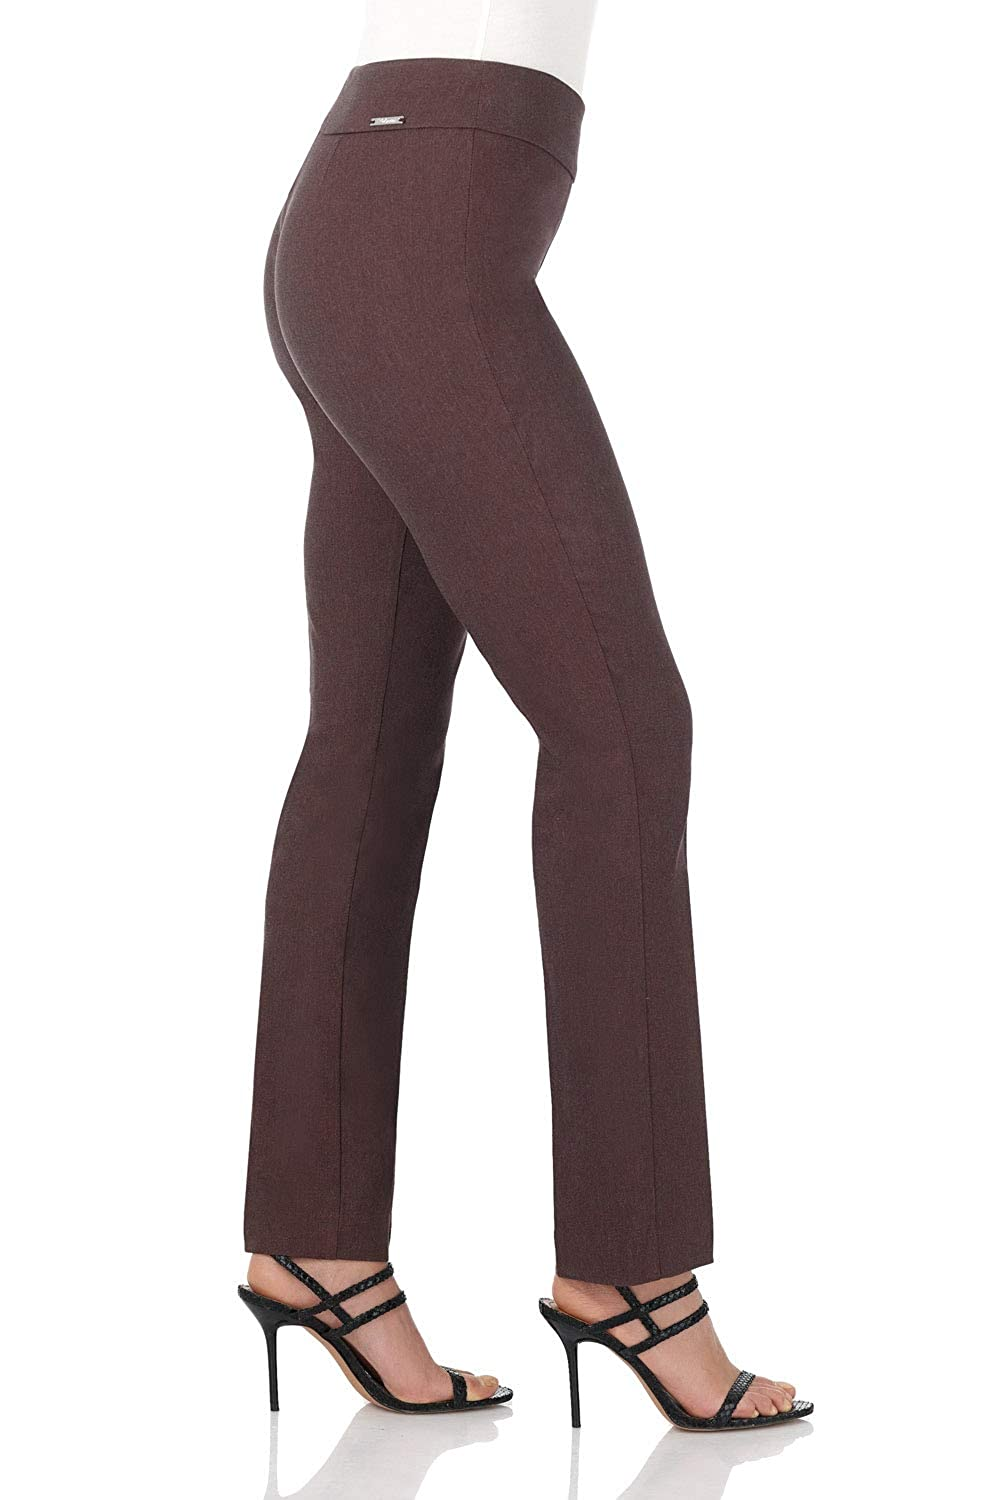 69e5f30bdb9 Rekucci Women s Ease in to Comfort Straight Leg Pant with Tummy Control   Amazon.ca  Clothing   Accessories